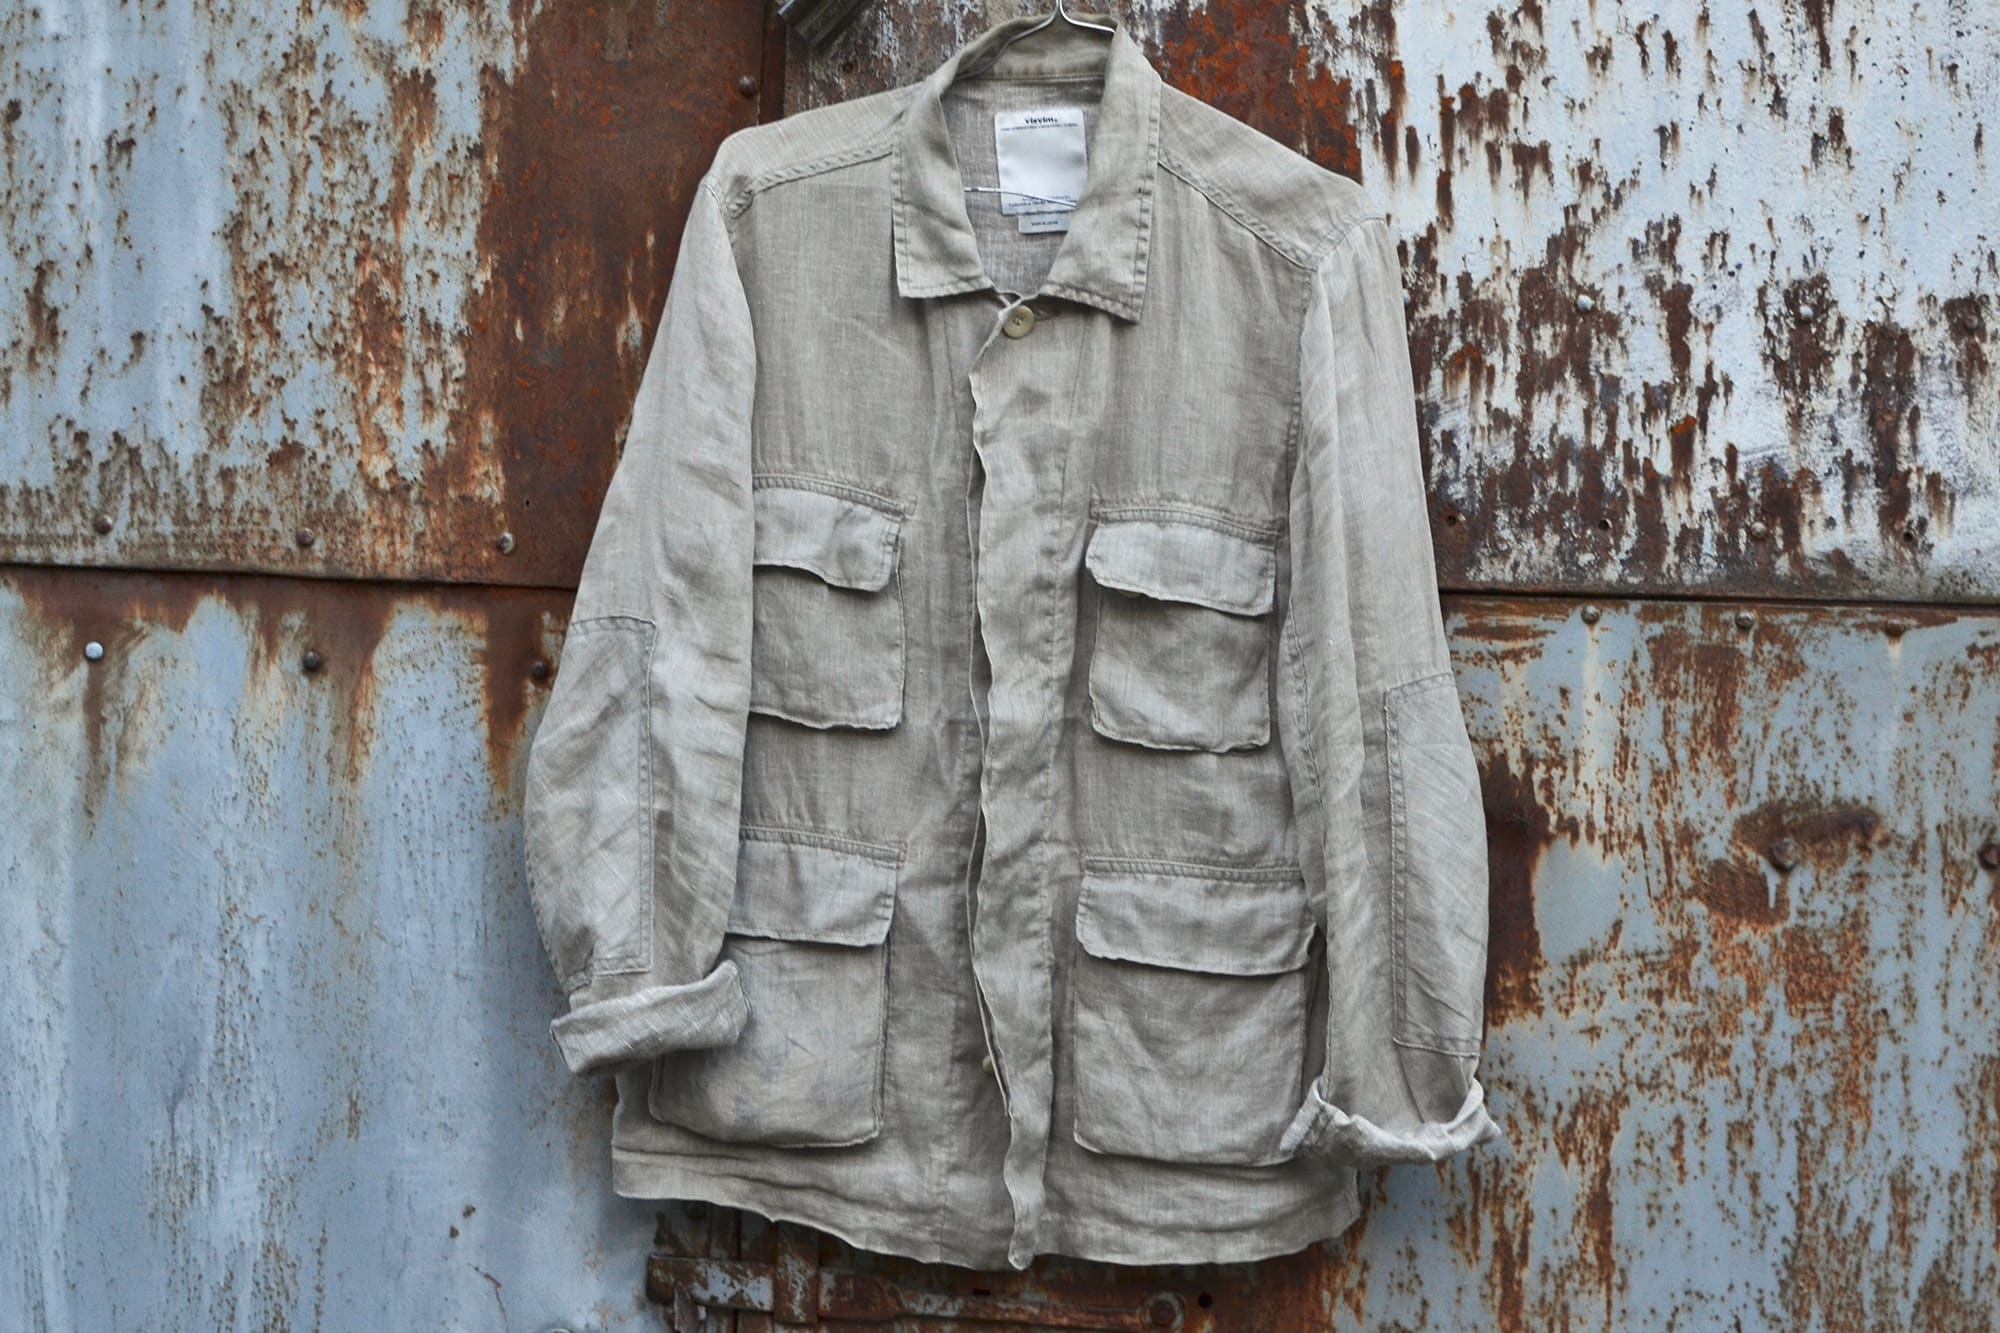 Visvim Kilgore linen jacket - sand color